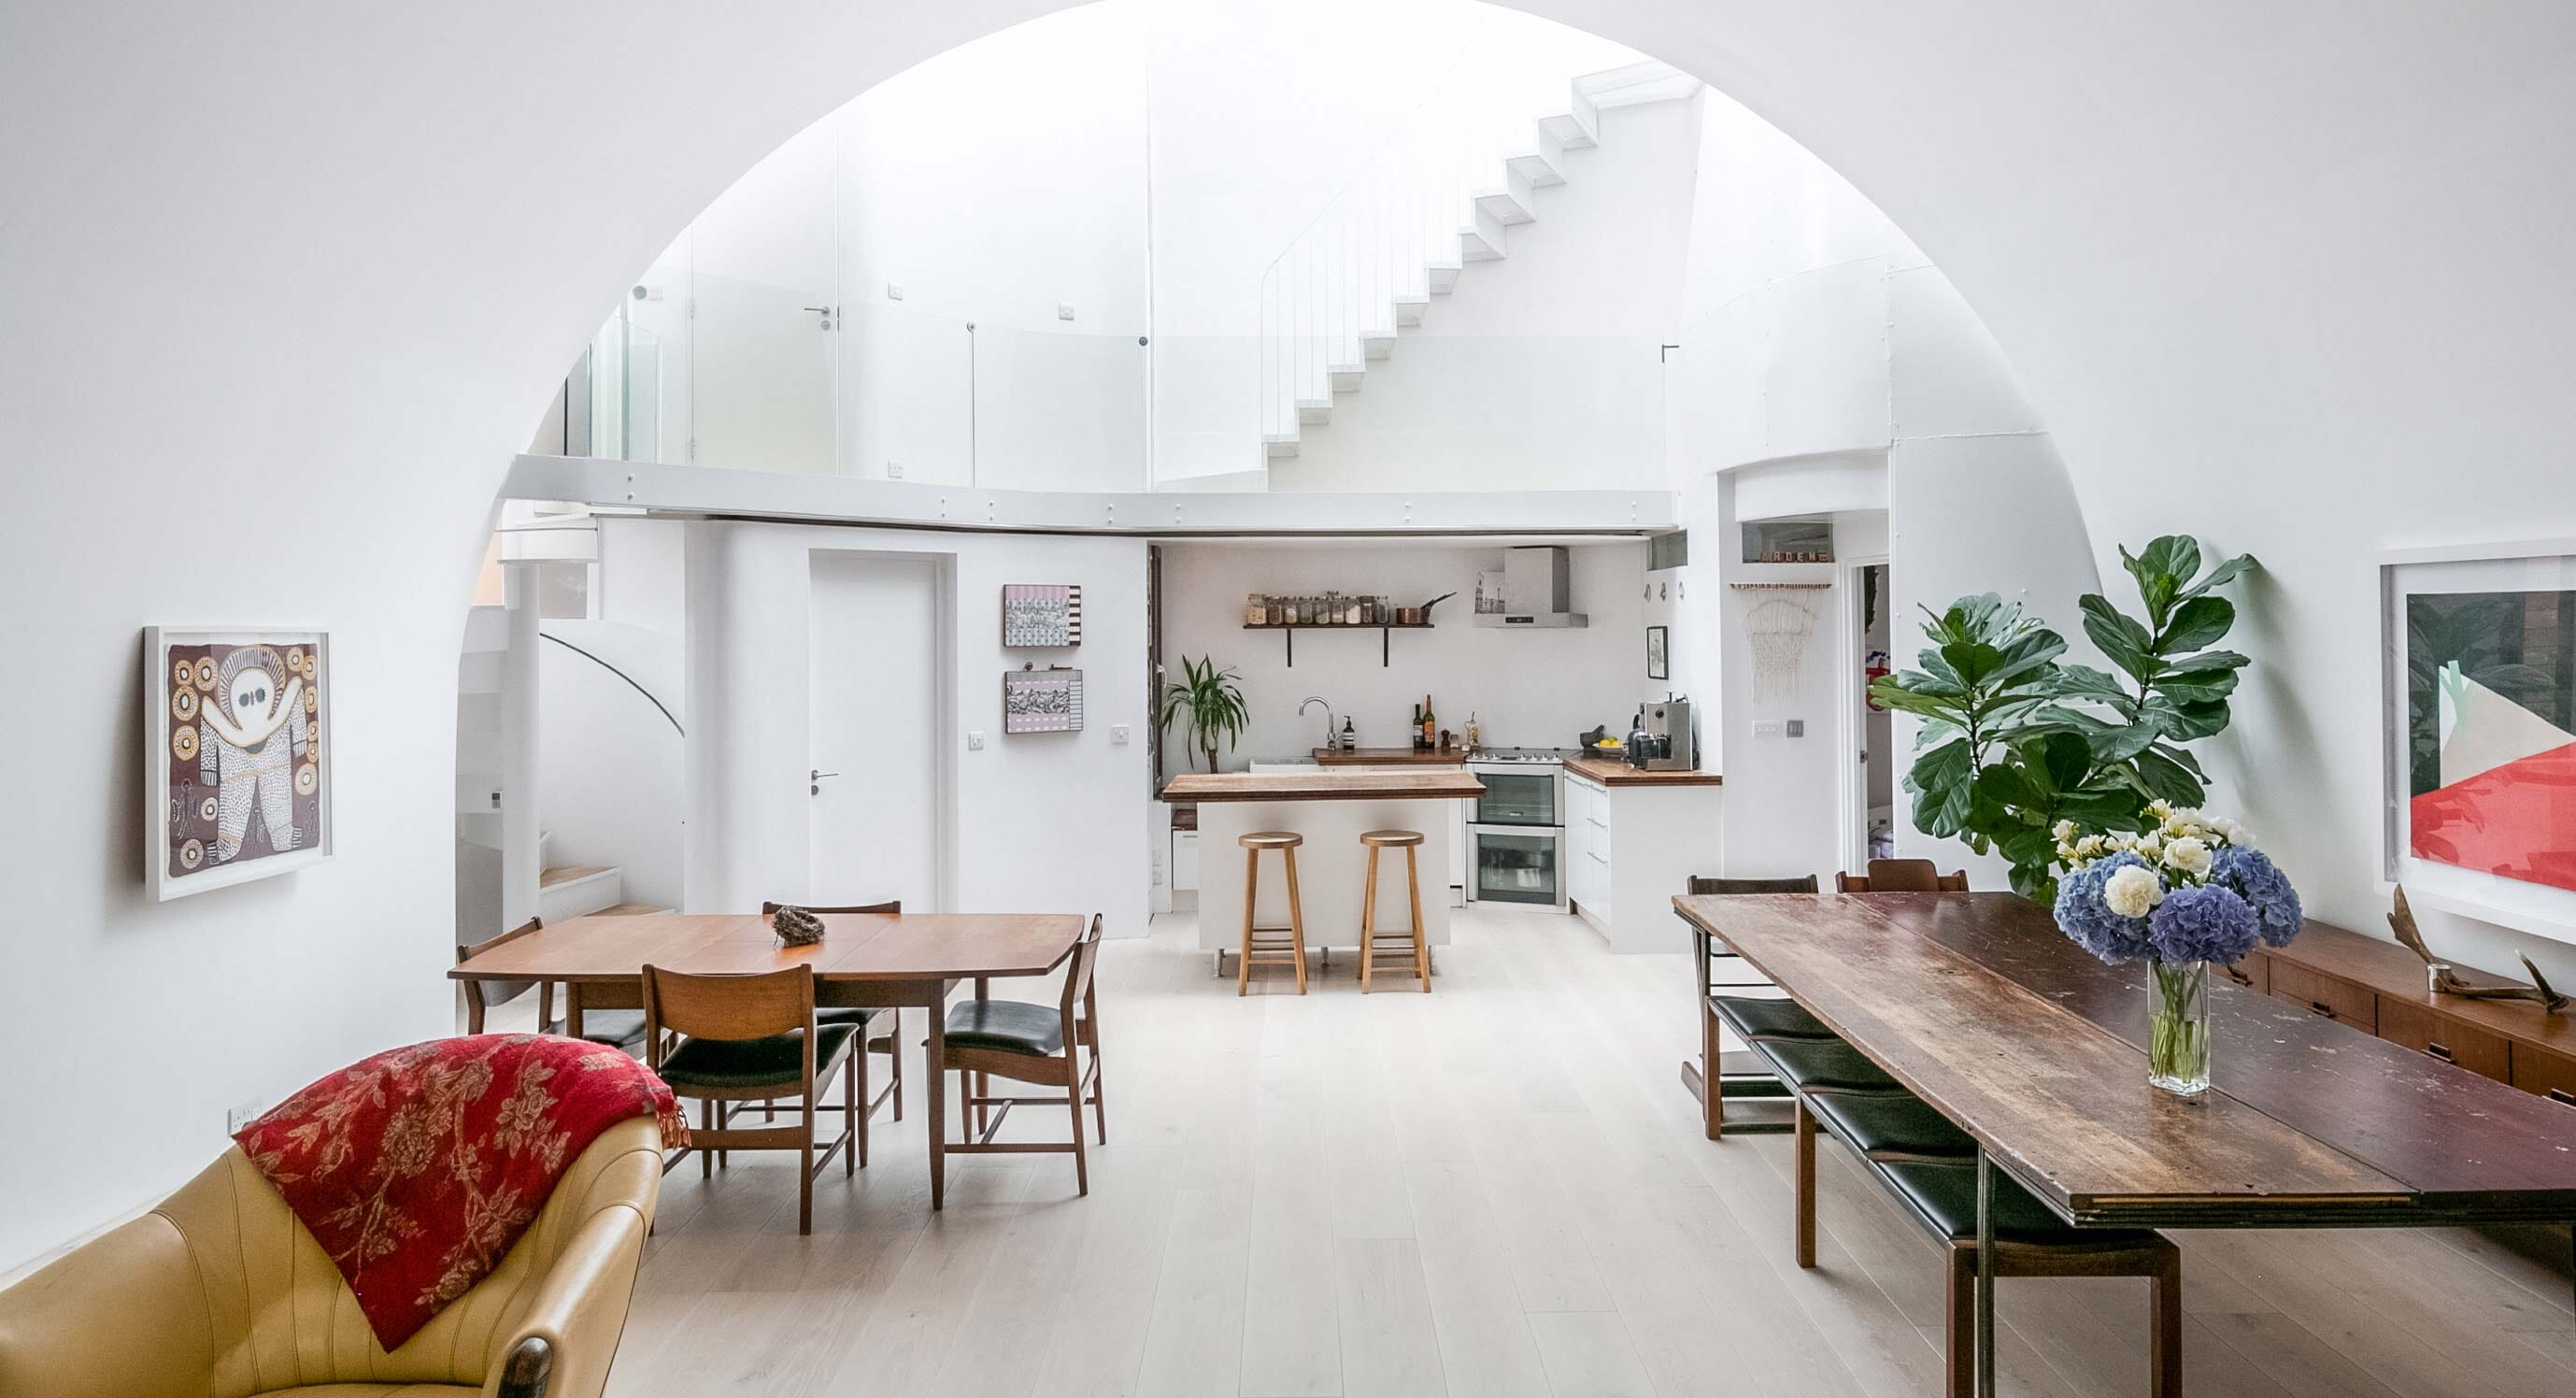 London Property Of The Week: Archway Studios, SE17